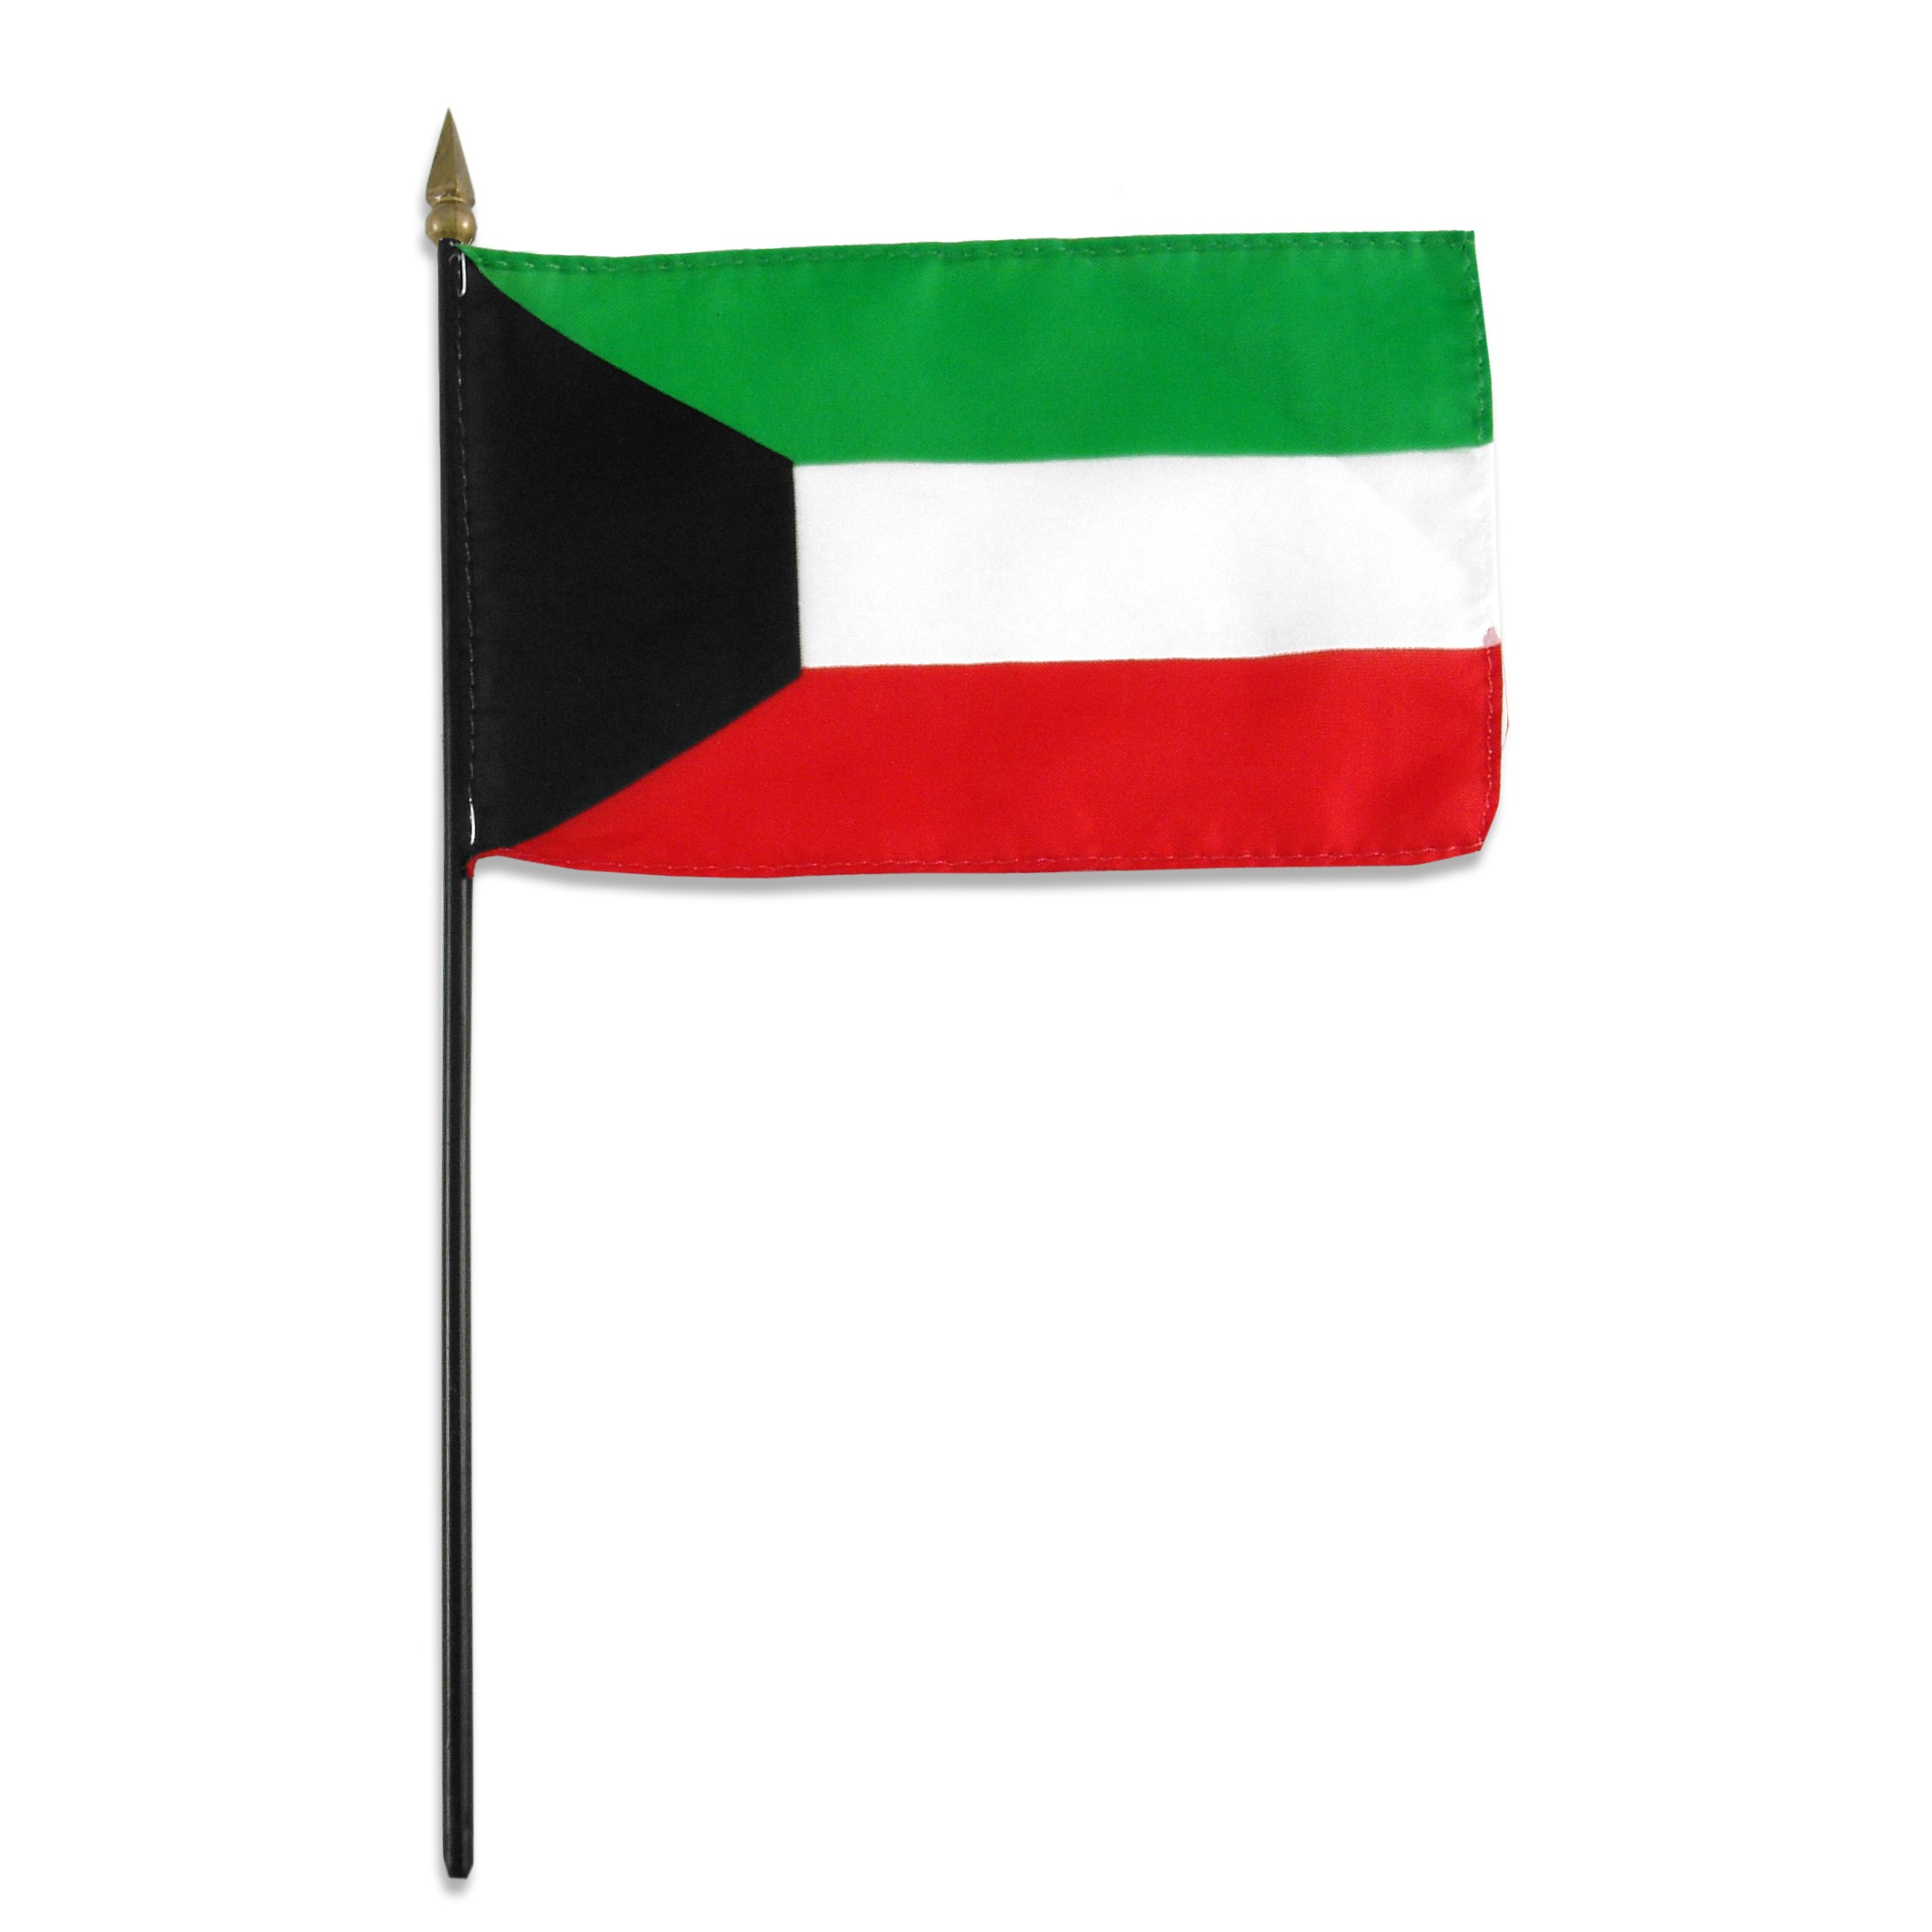 Kuwait cliparts.